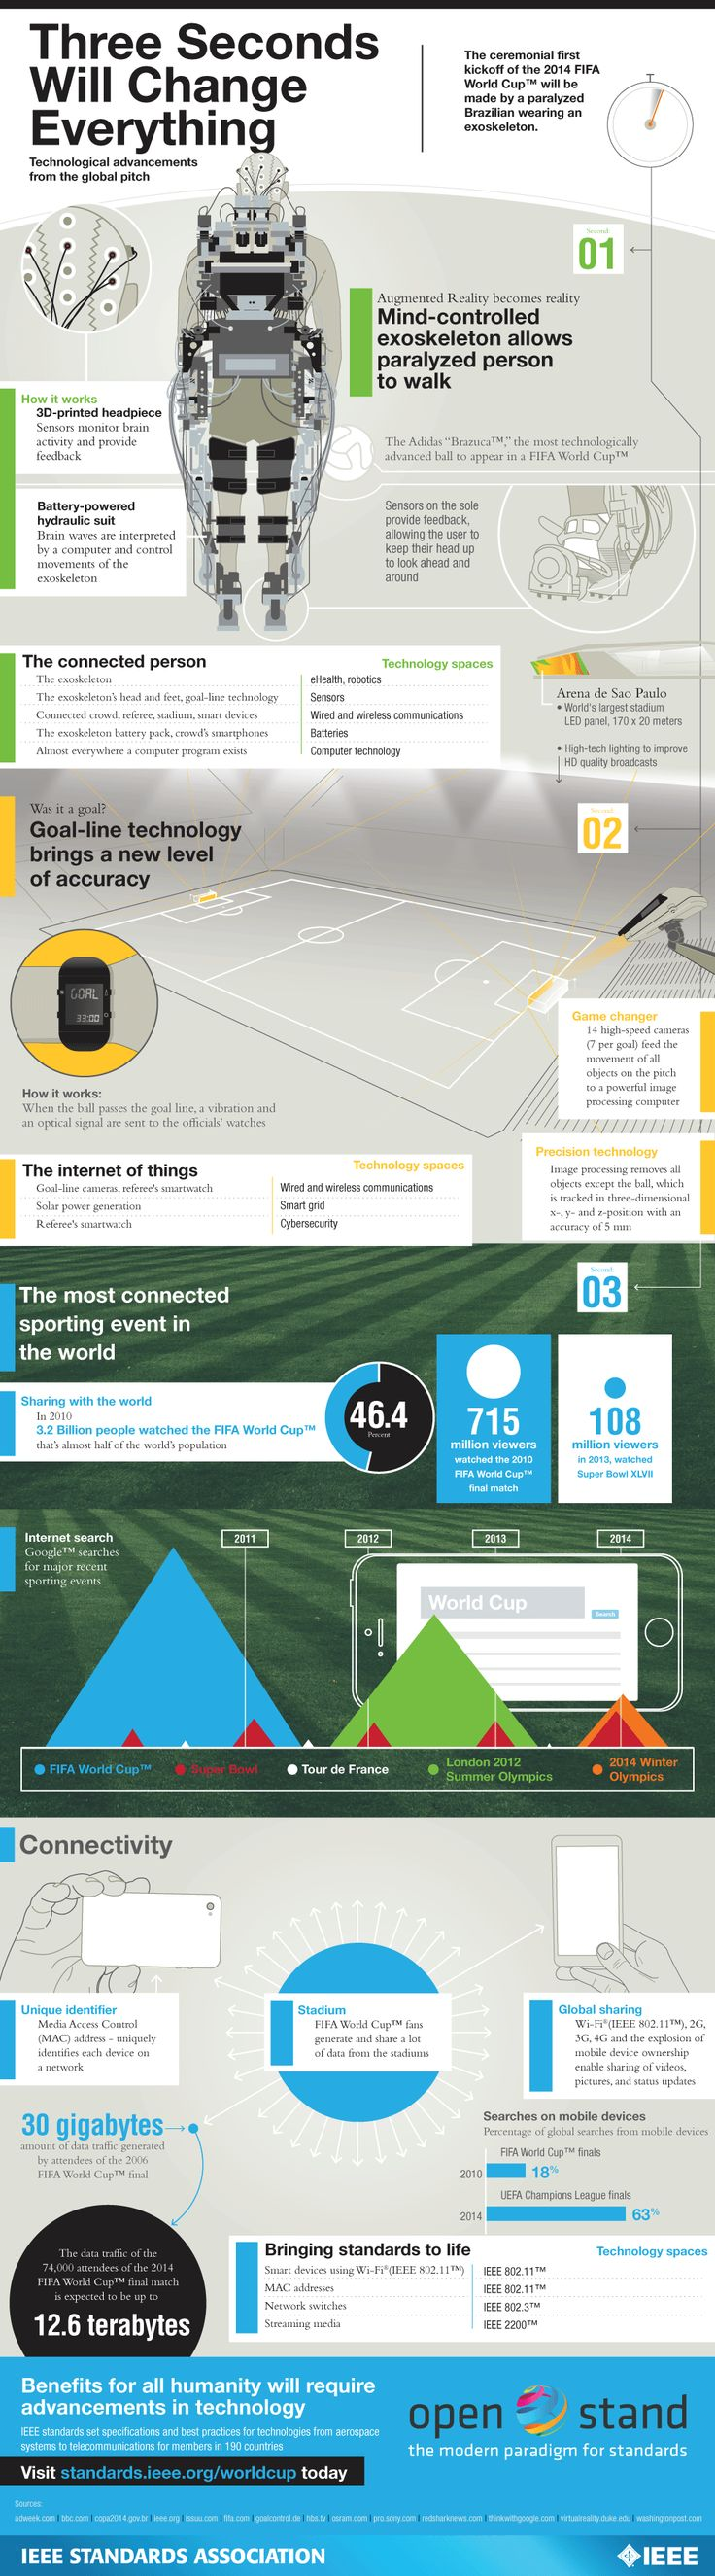 The Technology Behind The 2014 World Cup - IEEE Standards Association